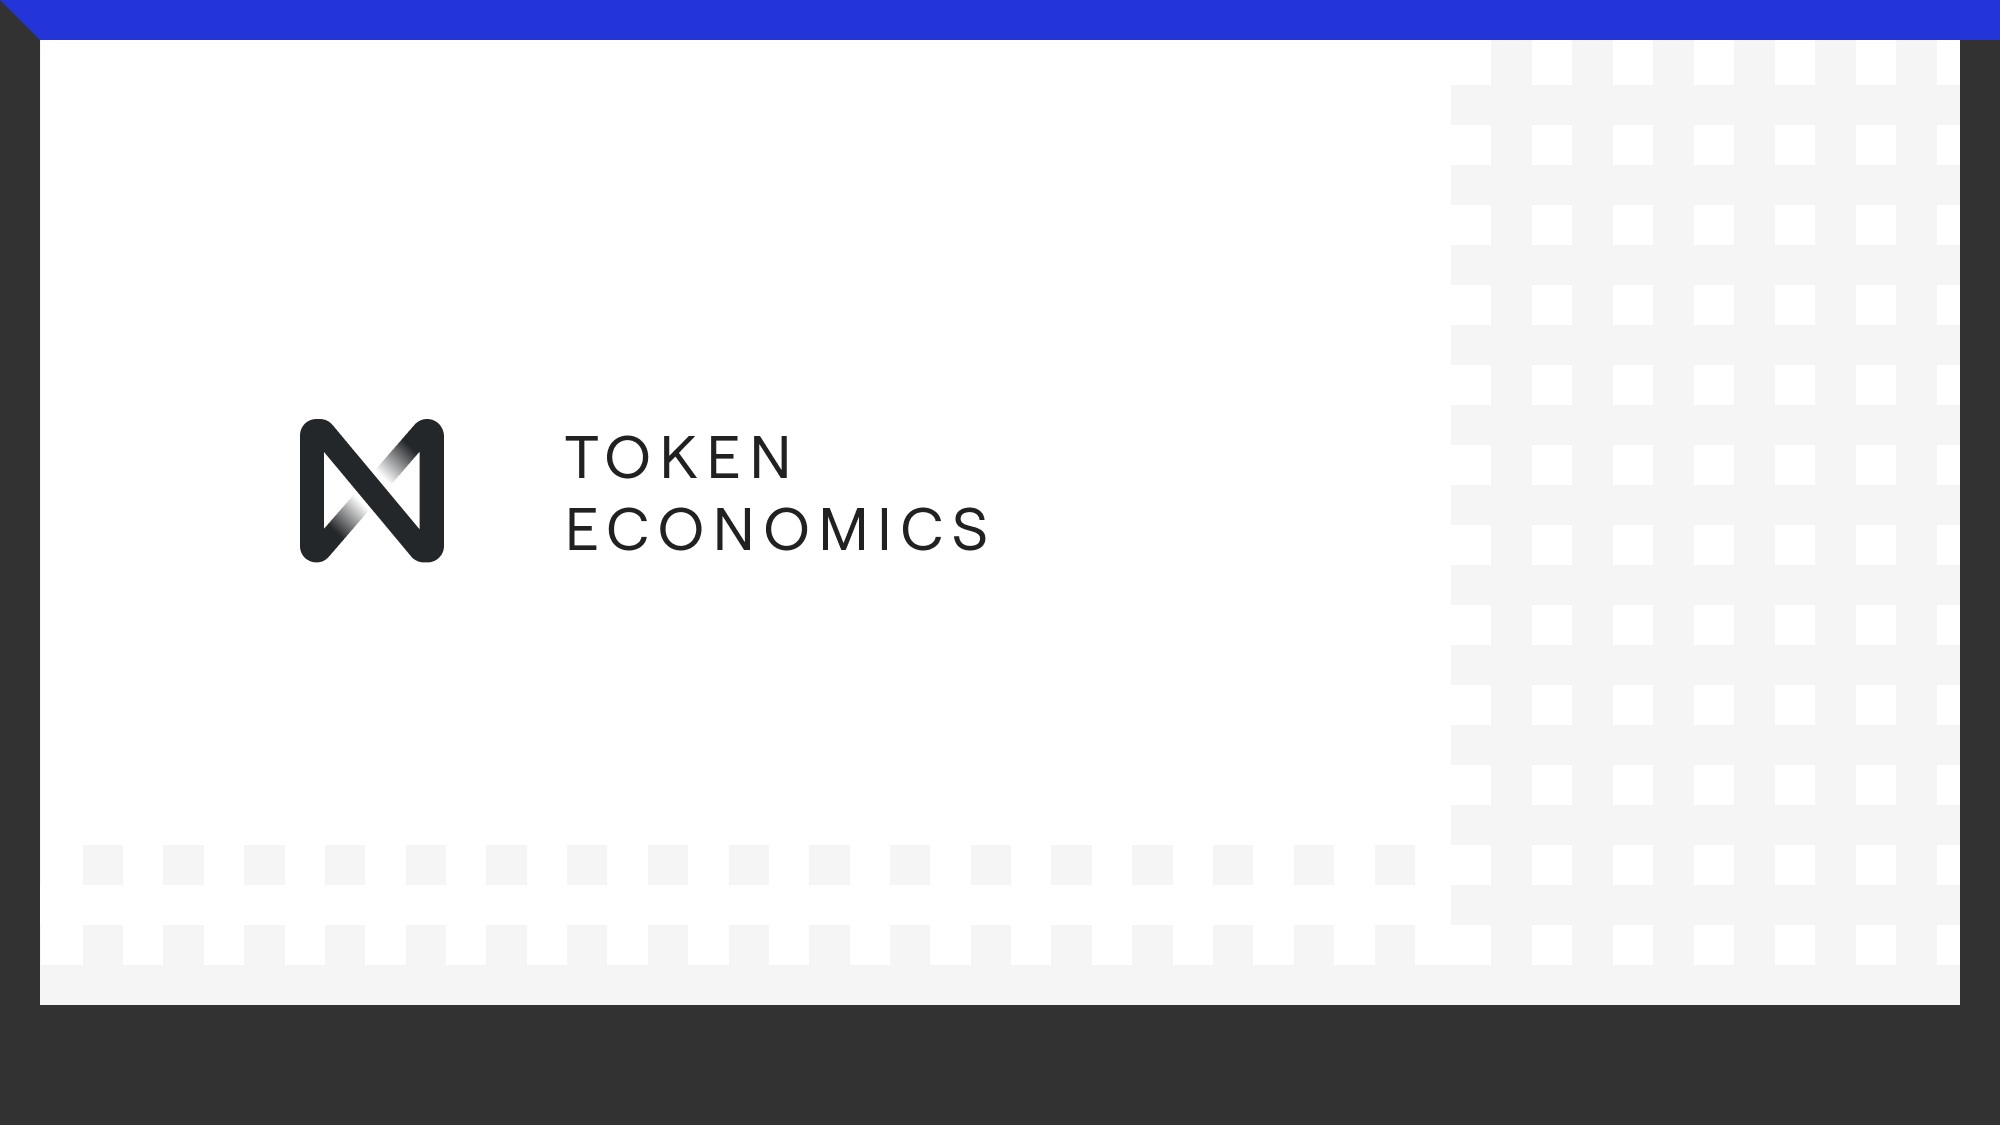 NEAR Token Economics